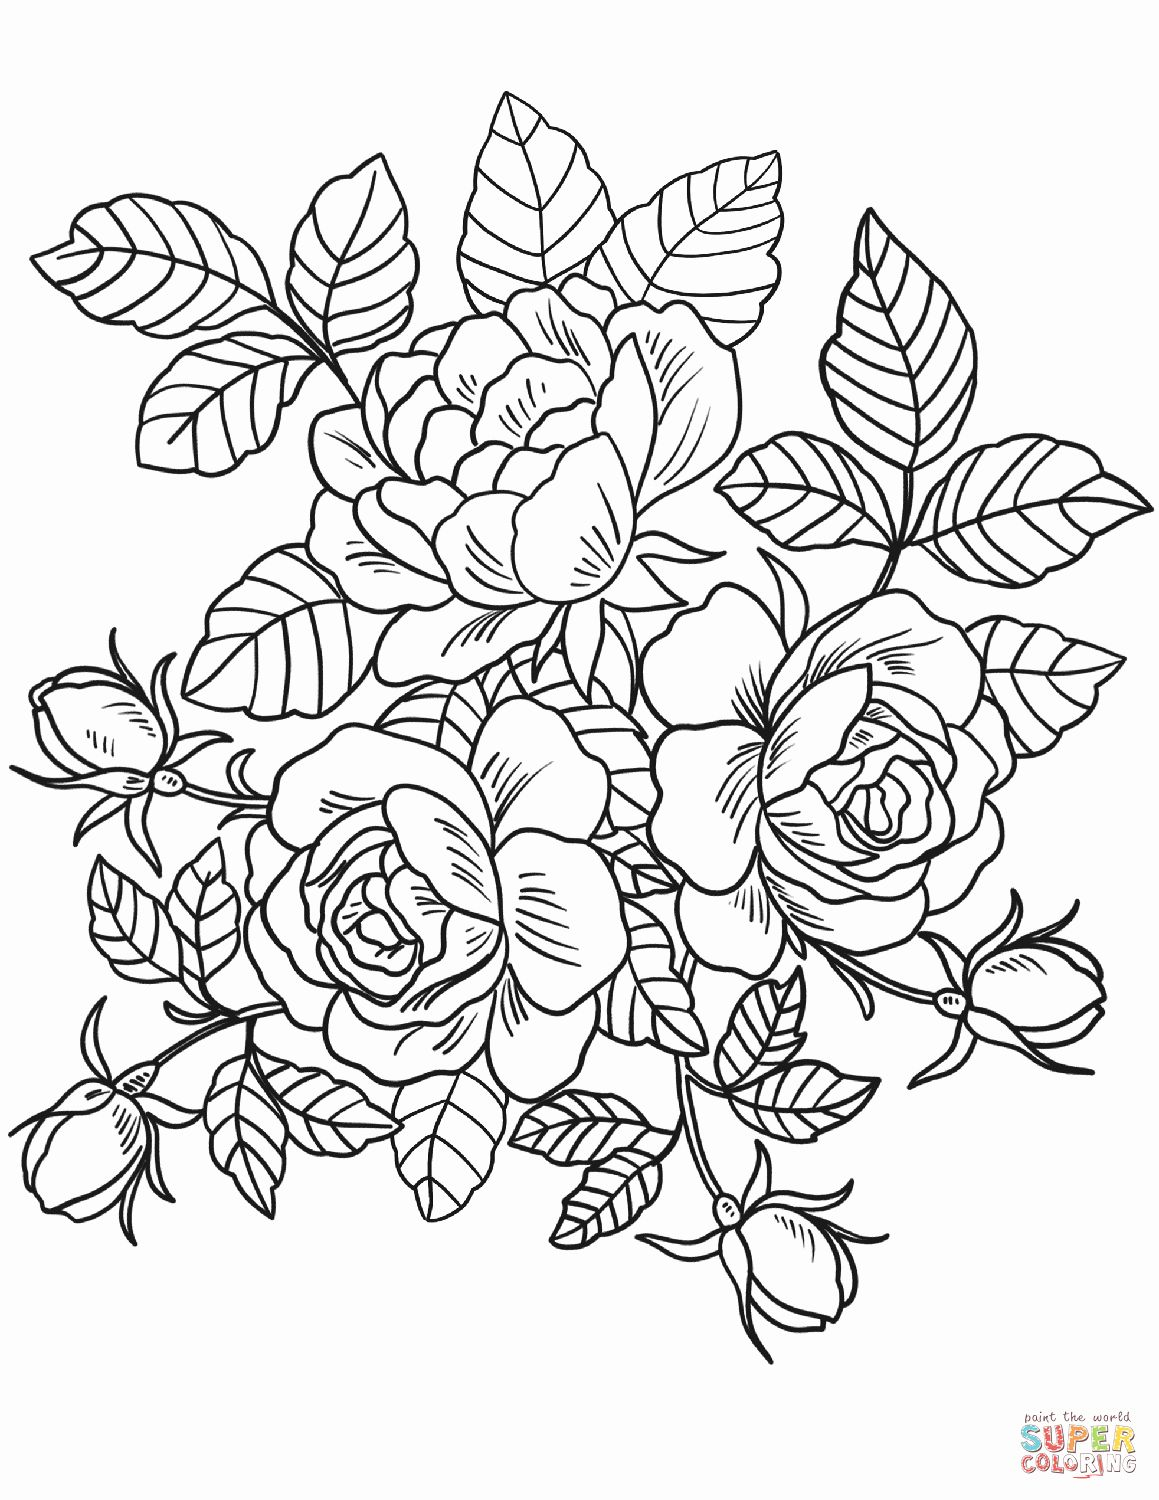 Flower Coloring Sheets For Adults Beautiful Roses Flowers Coloring Page In 2020 Rose Coloring Pages Detailed Coloring Pages Printable Flower Coloring Pages